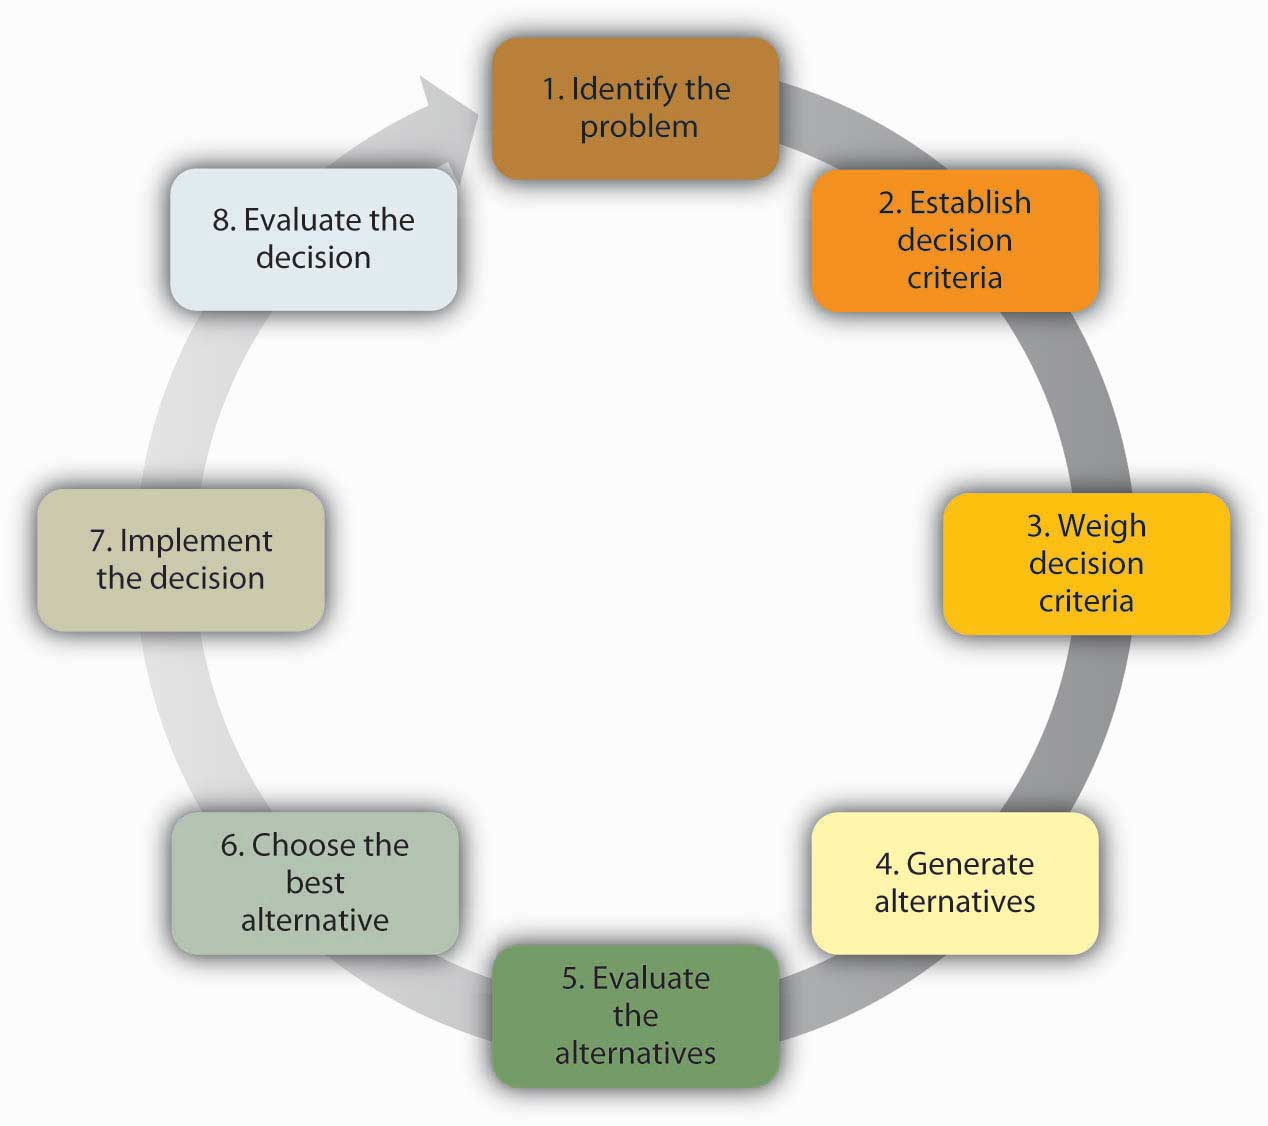 administrative problems involved in decision making Problem solving vs decision making administrative office decision making and problem solving are critically important skill areas for.